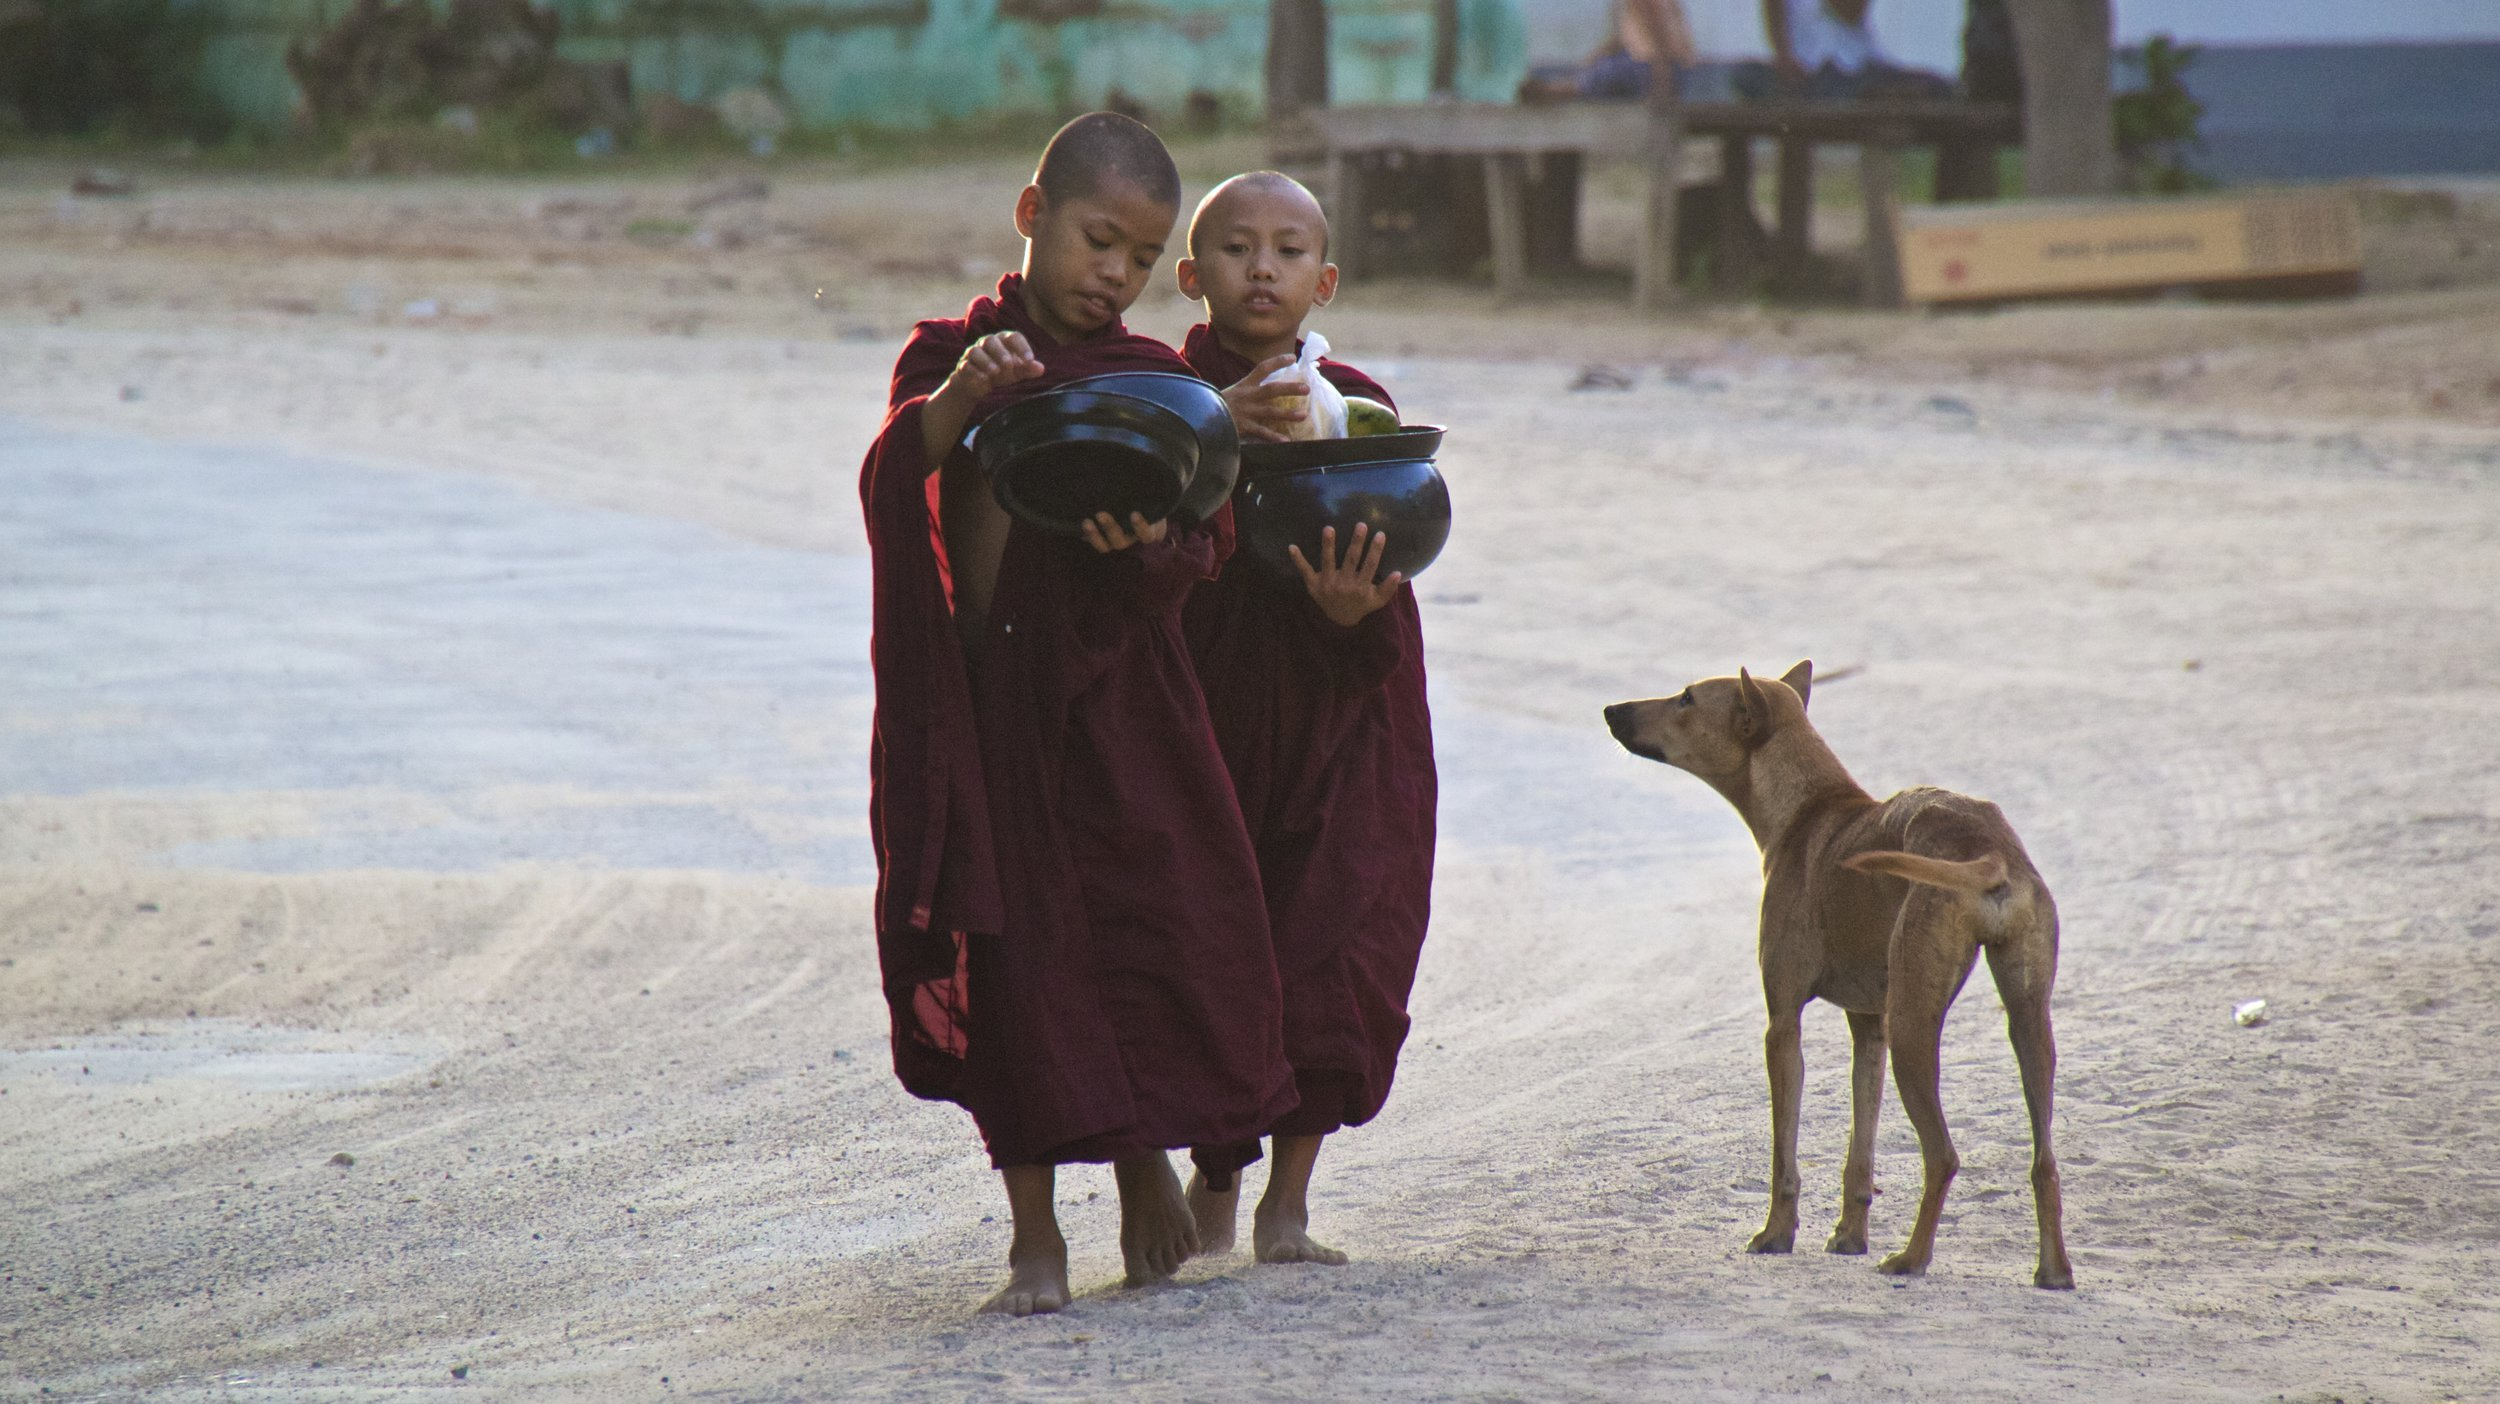 bagan burma myanmar buddhist monks alms 3.jpg